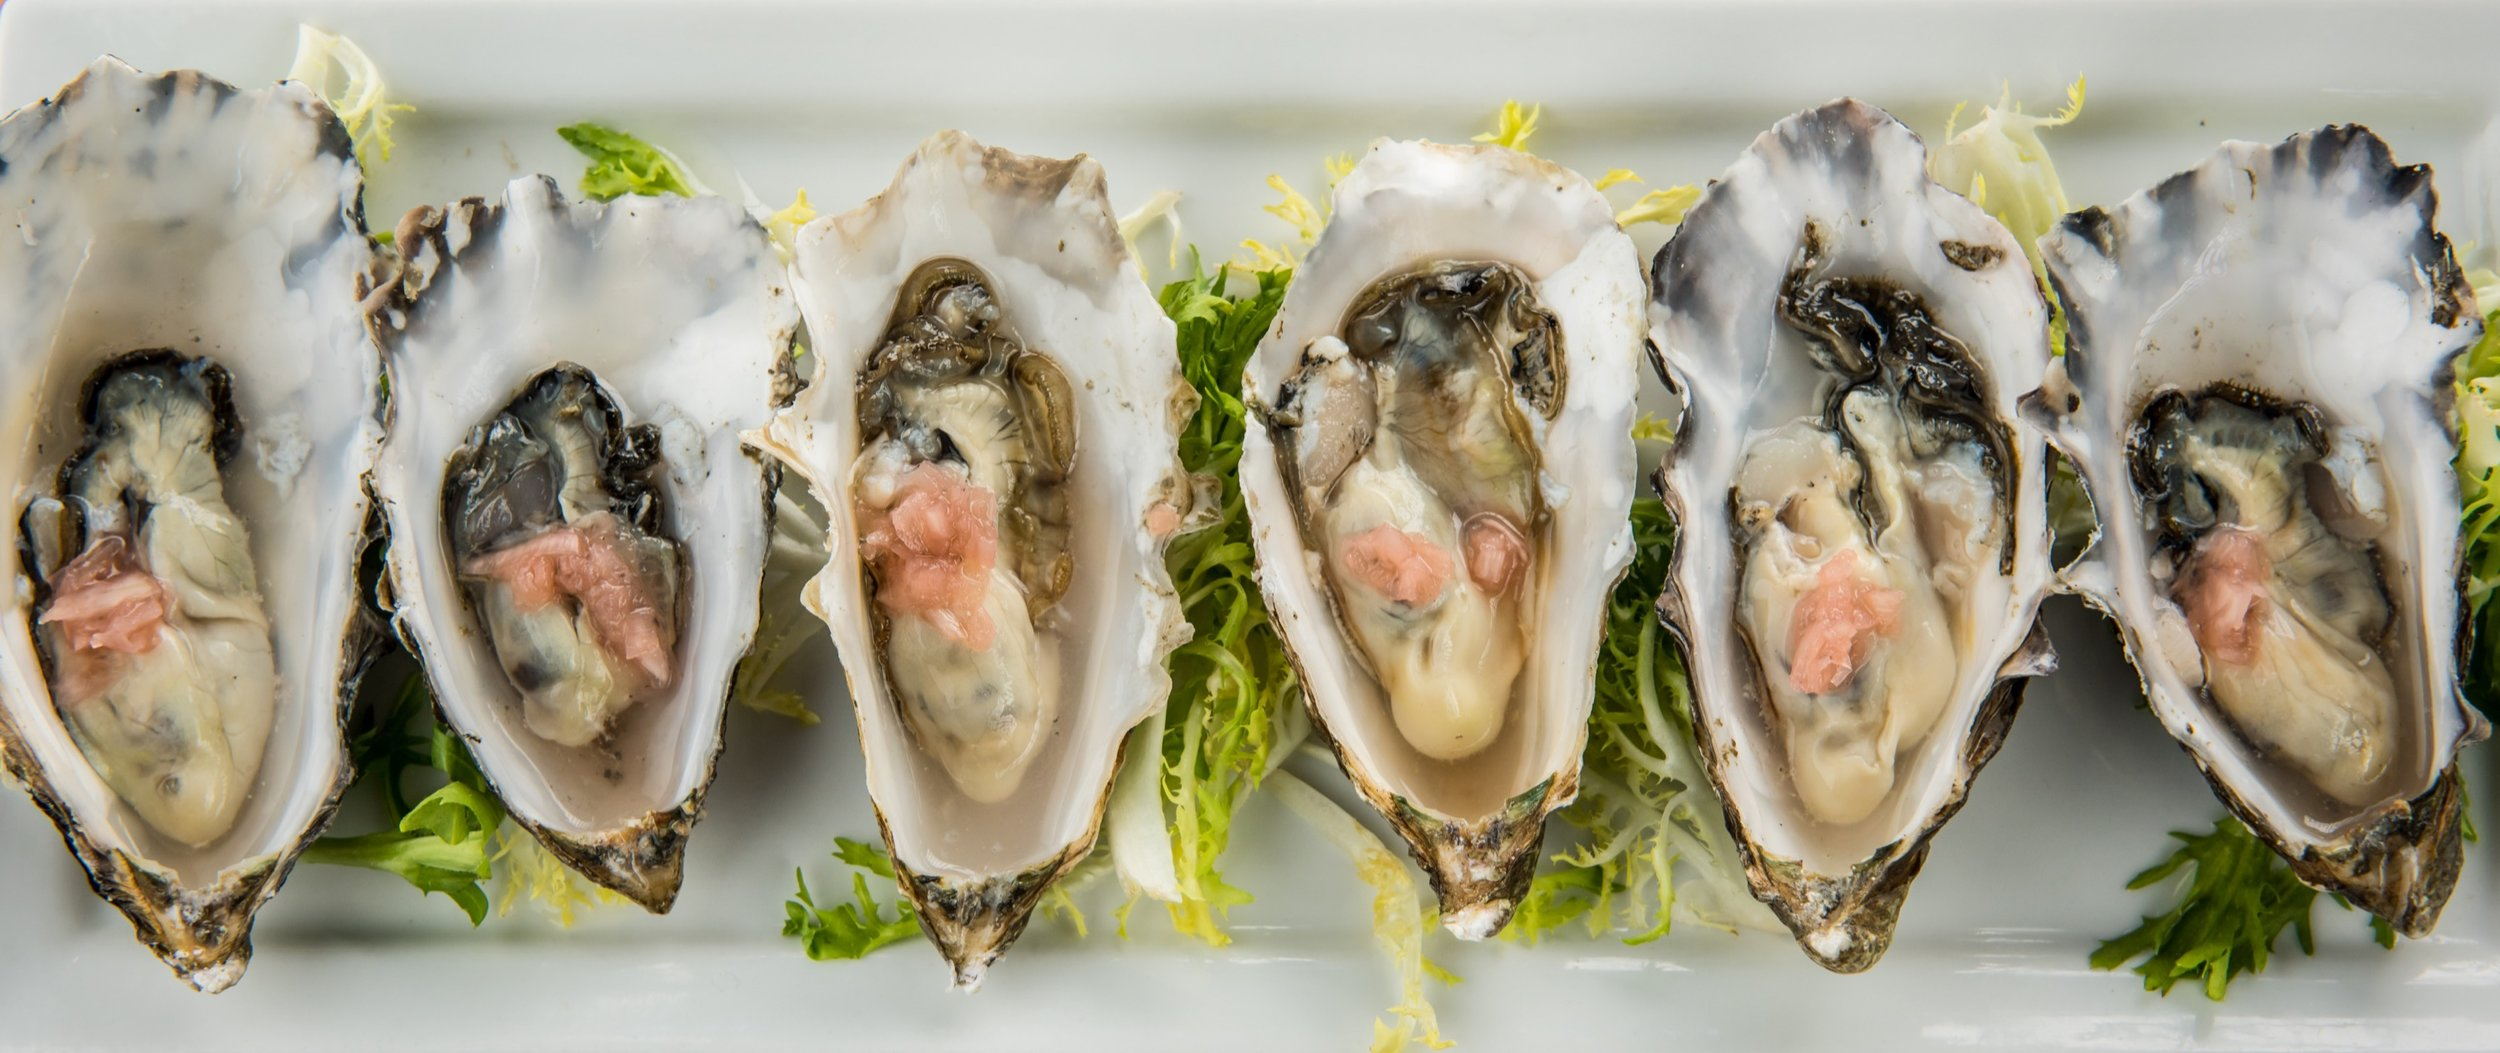 Oysters on the half-shell, plated on a bed of frisee lettuce.